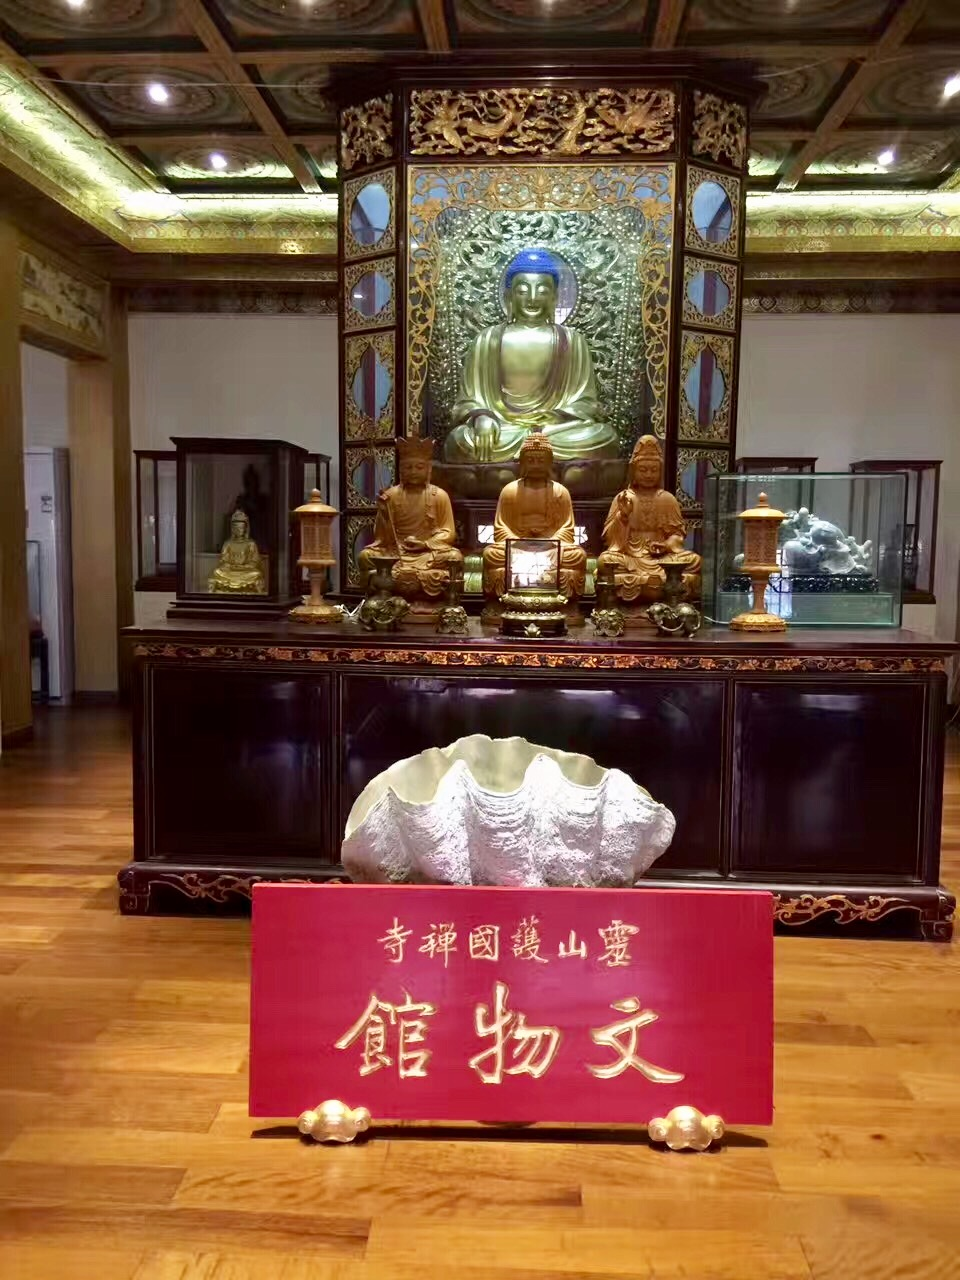 Shakyamuni's  relic was displayed in the museum of Ling Shan Monastery